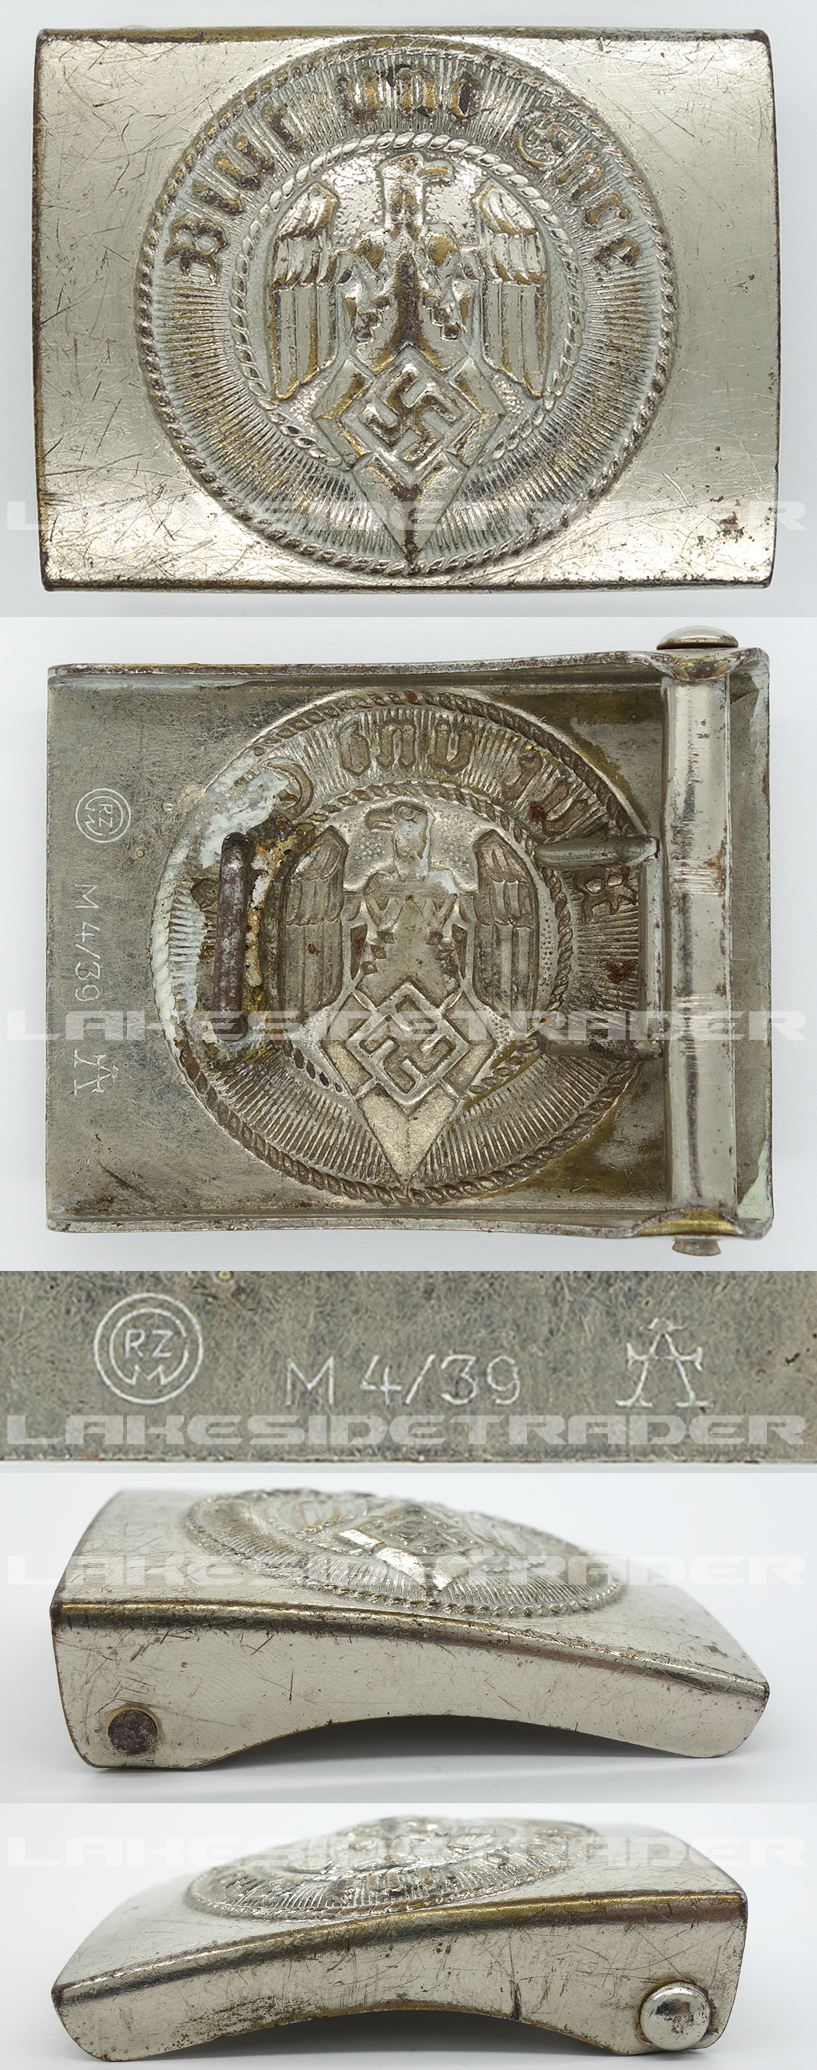 Hitler Youth Belt Buckle by RZM M4/39